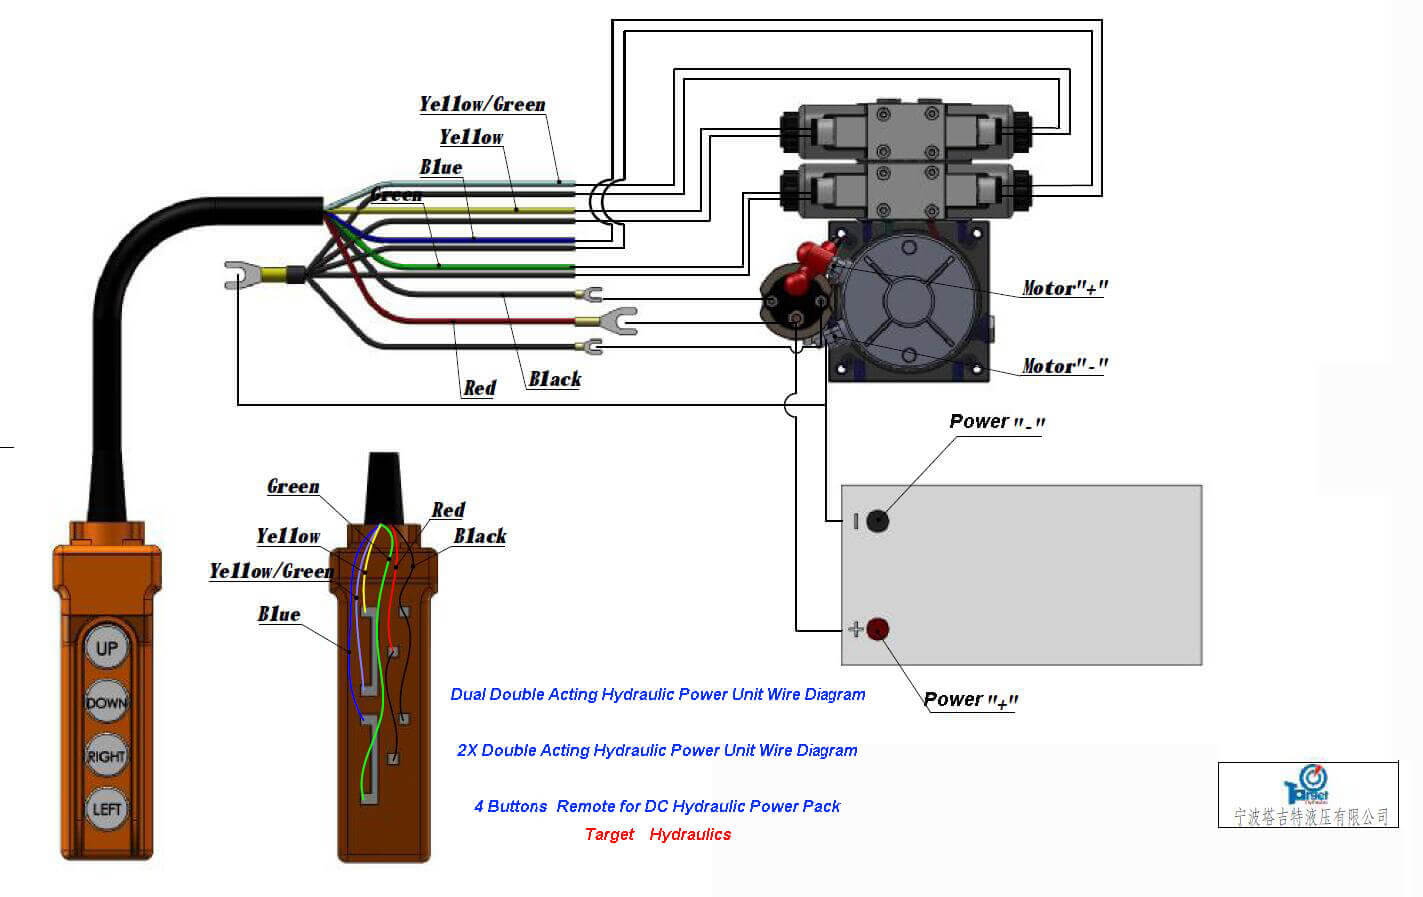 How to Wire Hydraulic Power Pack,Power Unit Diagram Design | Hydraulic Lift Wiring Diagram |  | Target Hydraulics